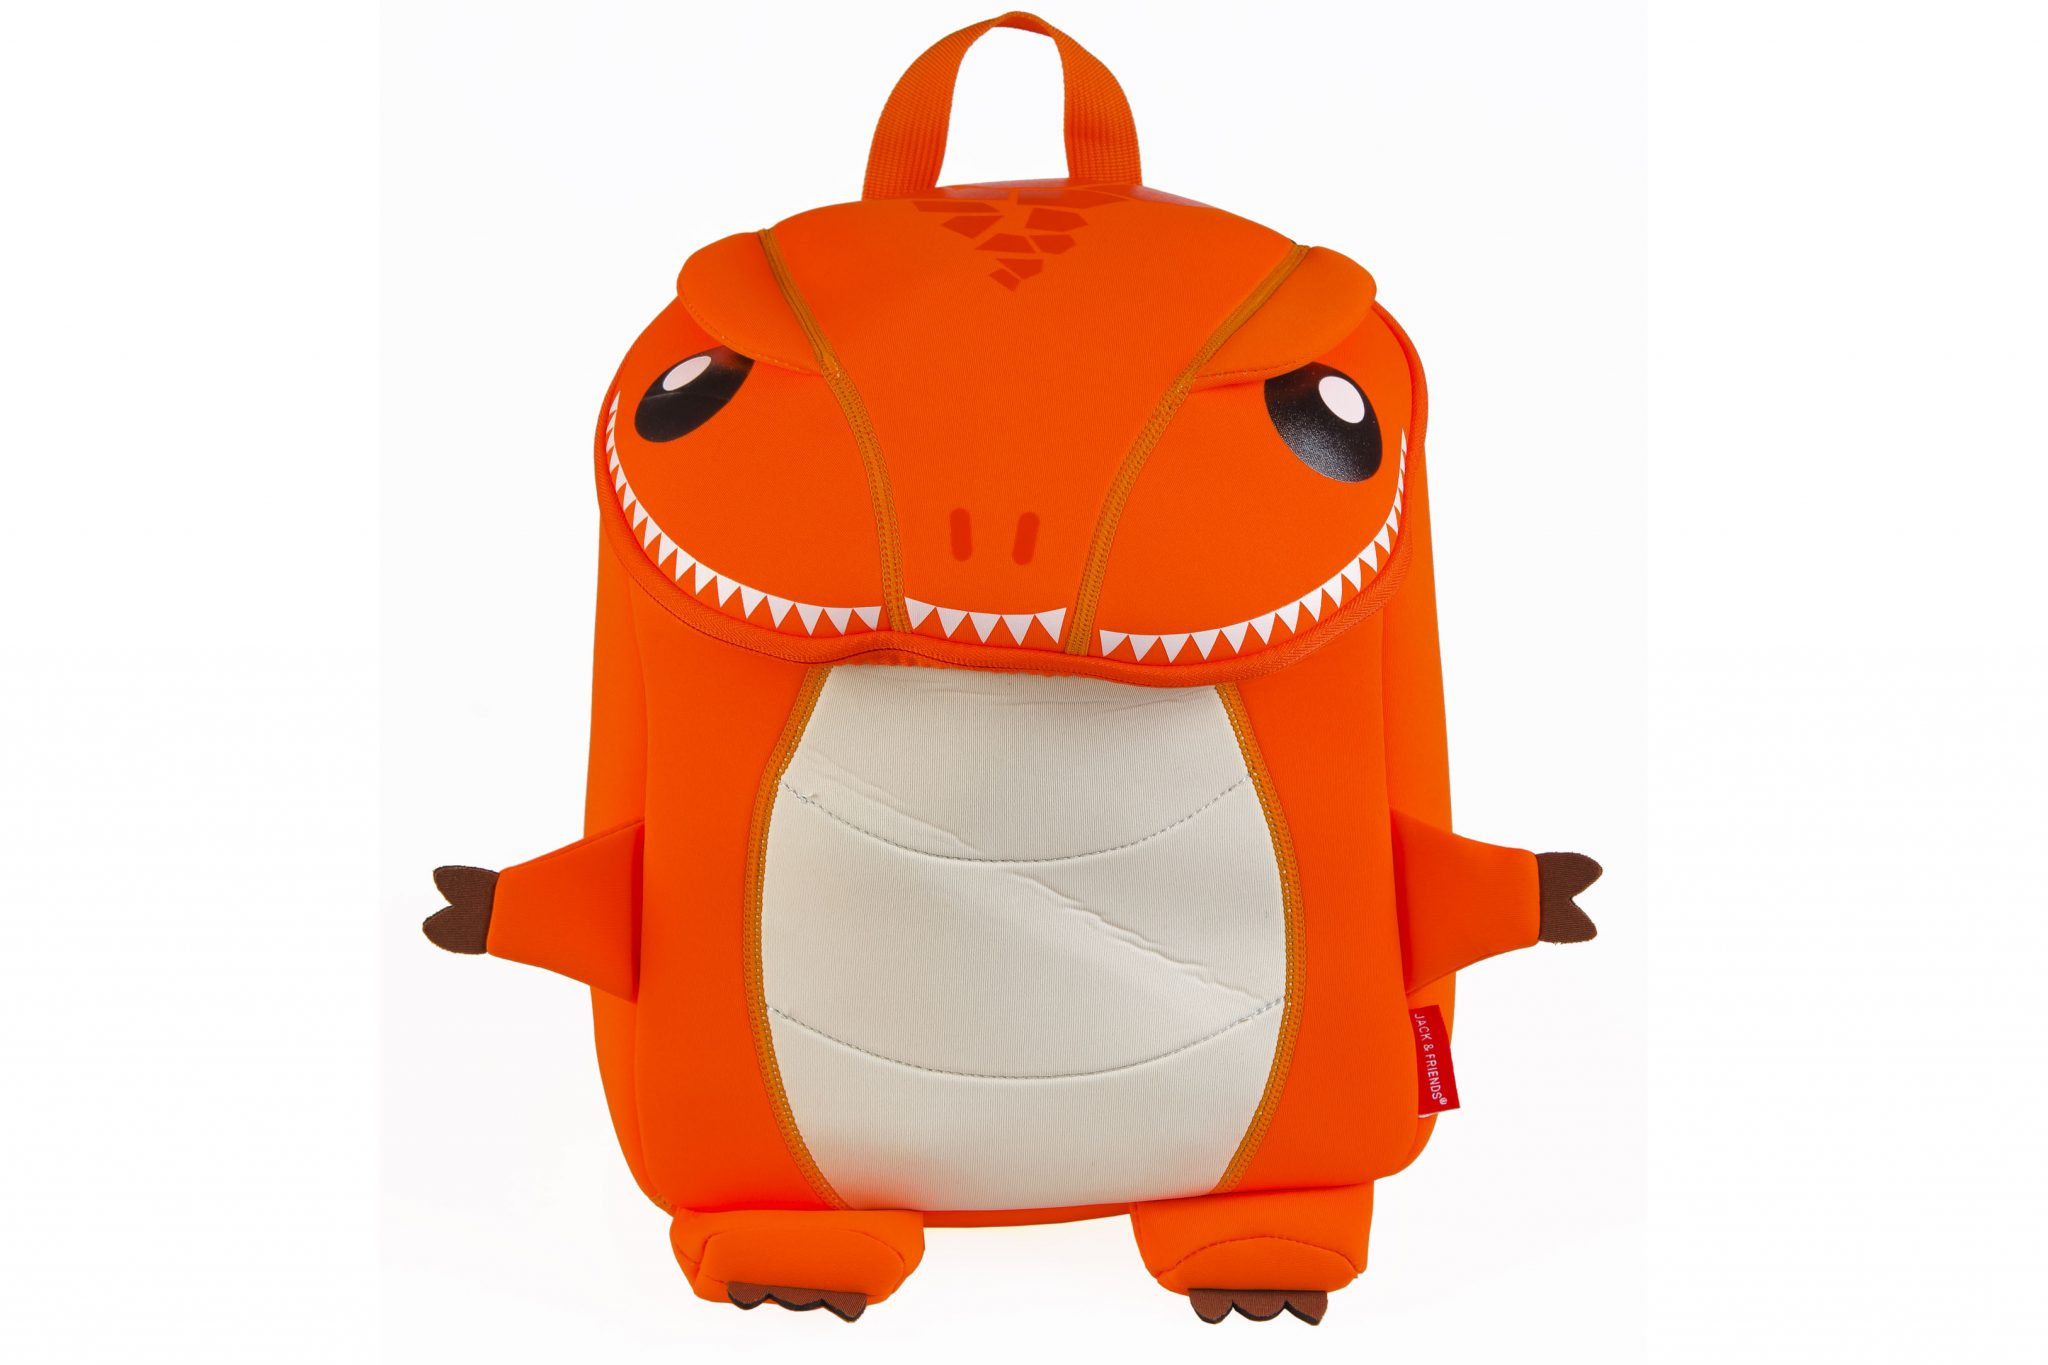 Jack & Friends backpack